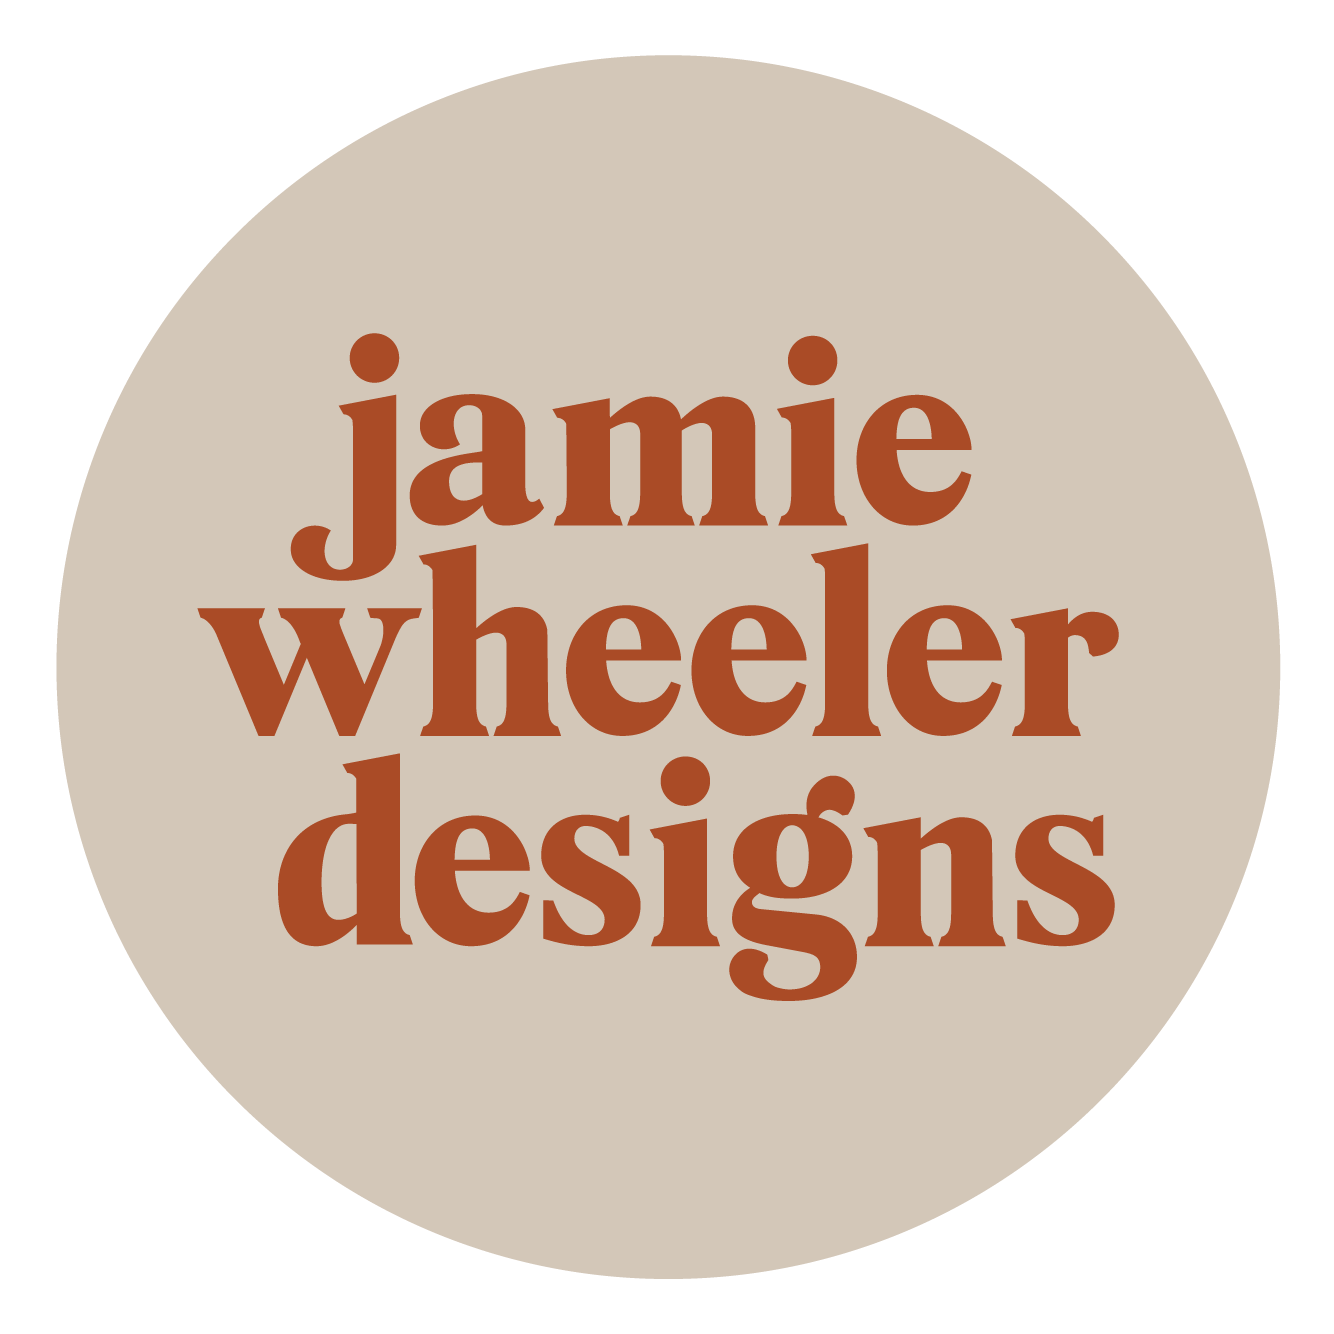 Jamie Wheeler Designs